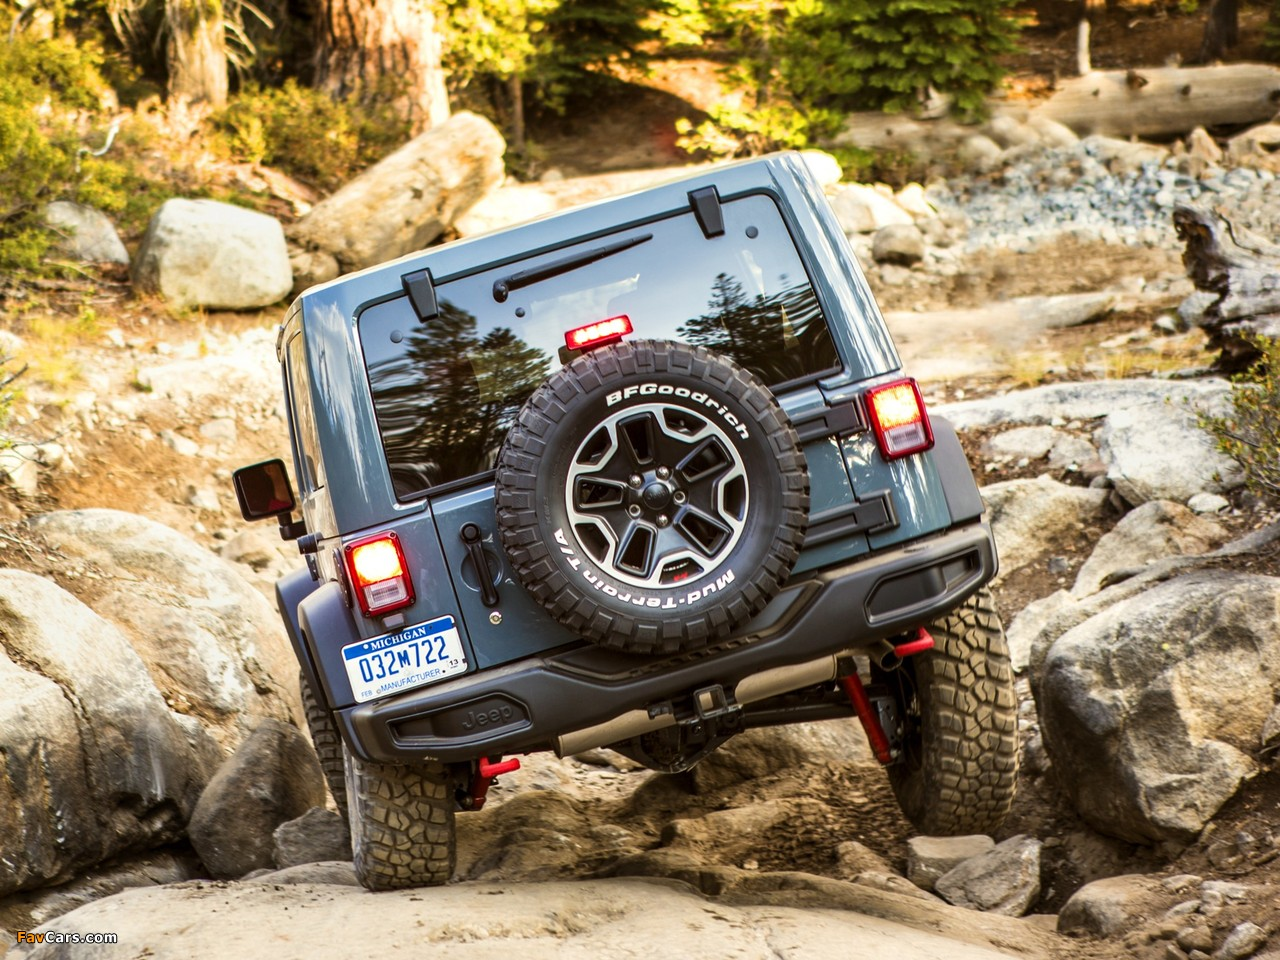 Jeep Wrangler Unlimited Rubicon 10th Anniversary (JK) 2013 wallpapers (1280 x 960)